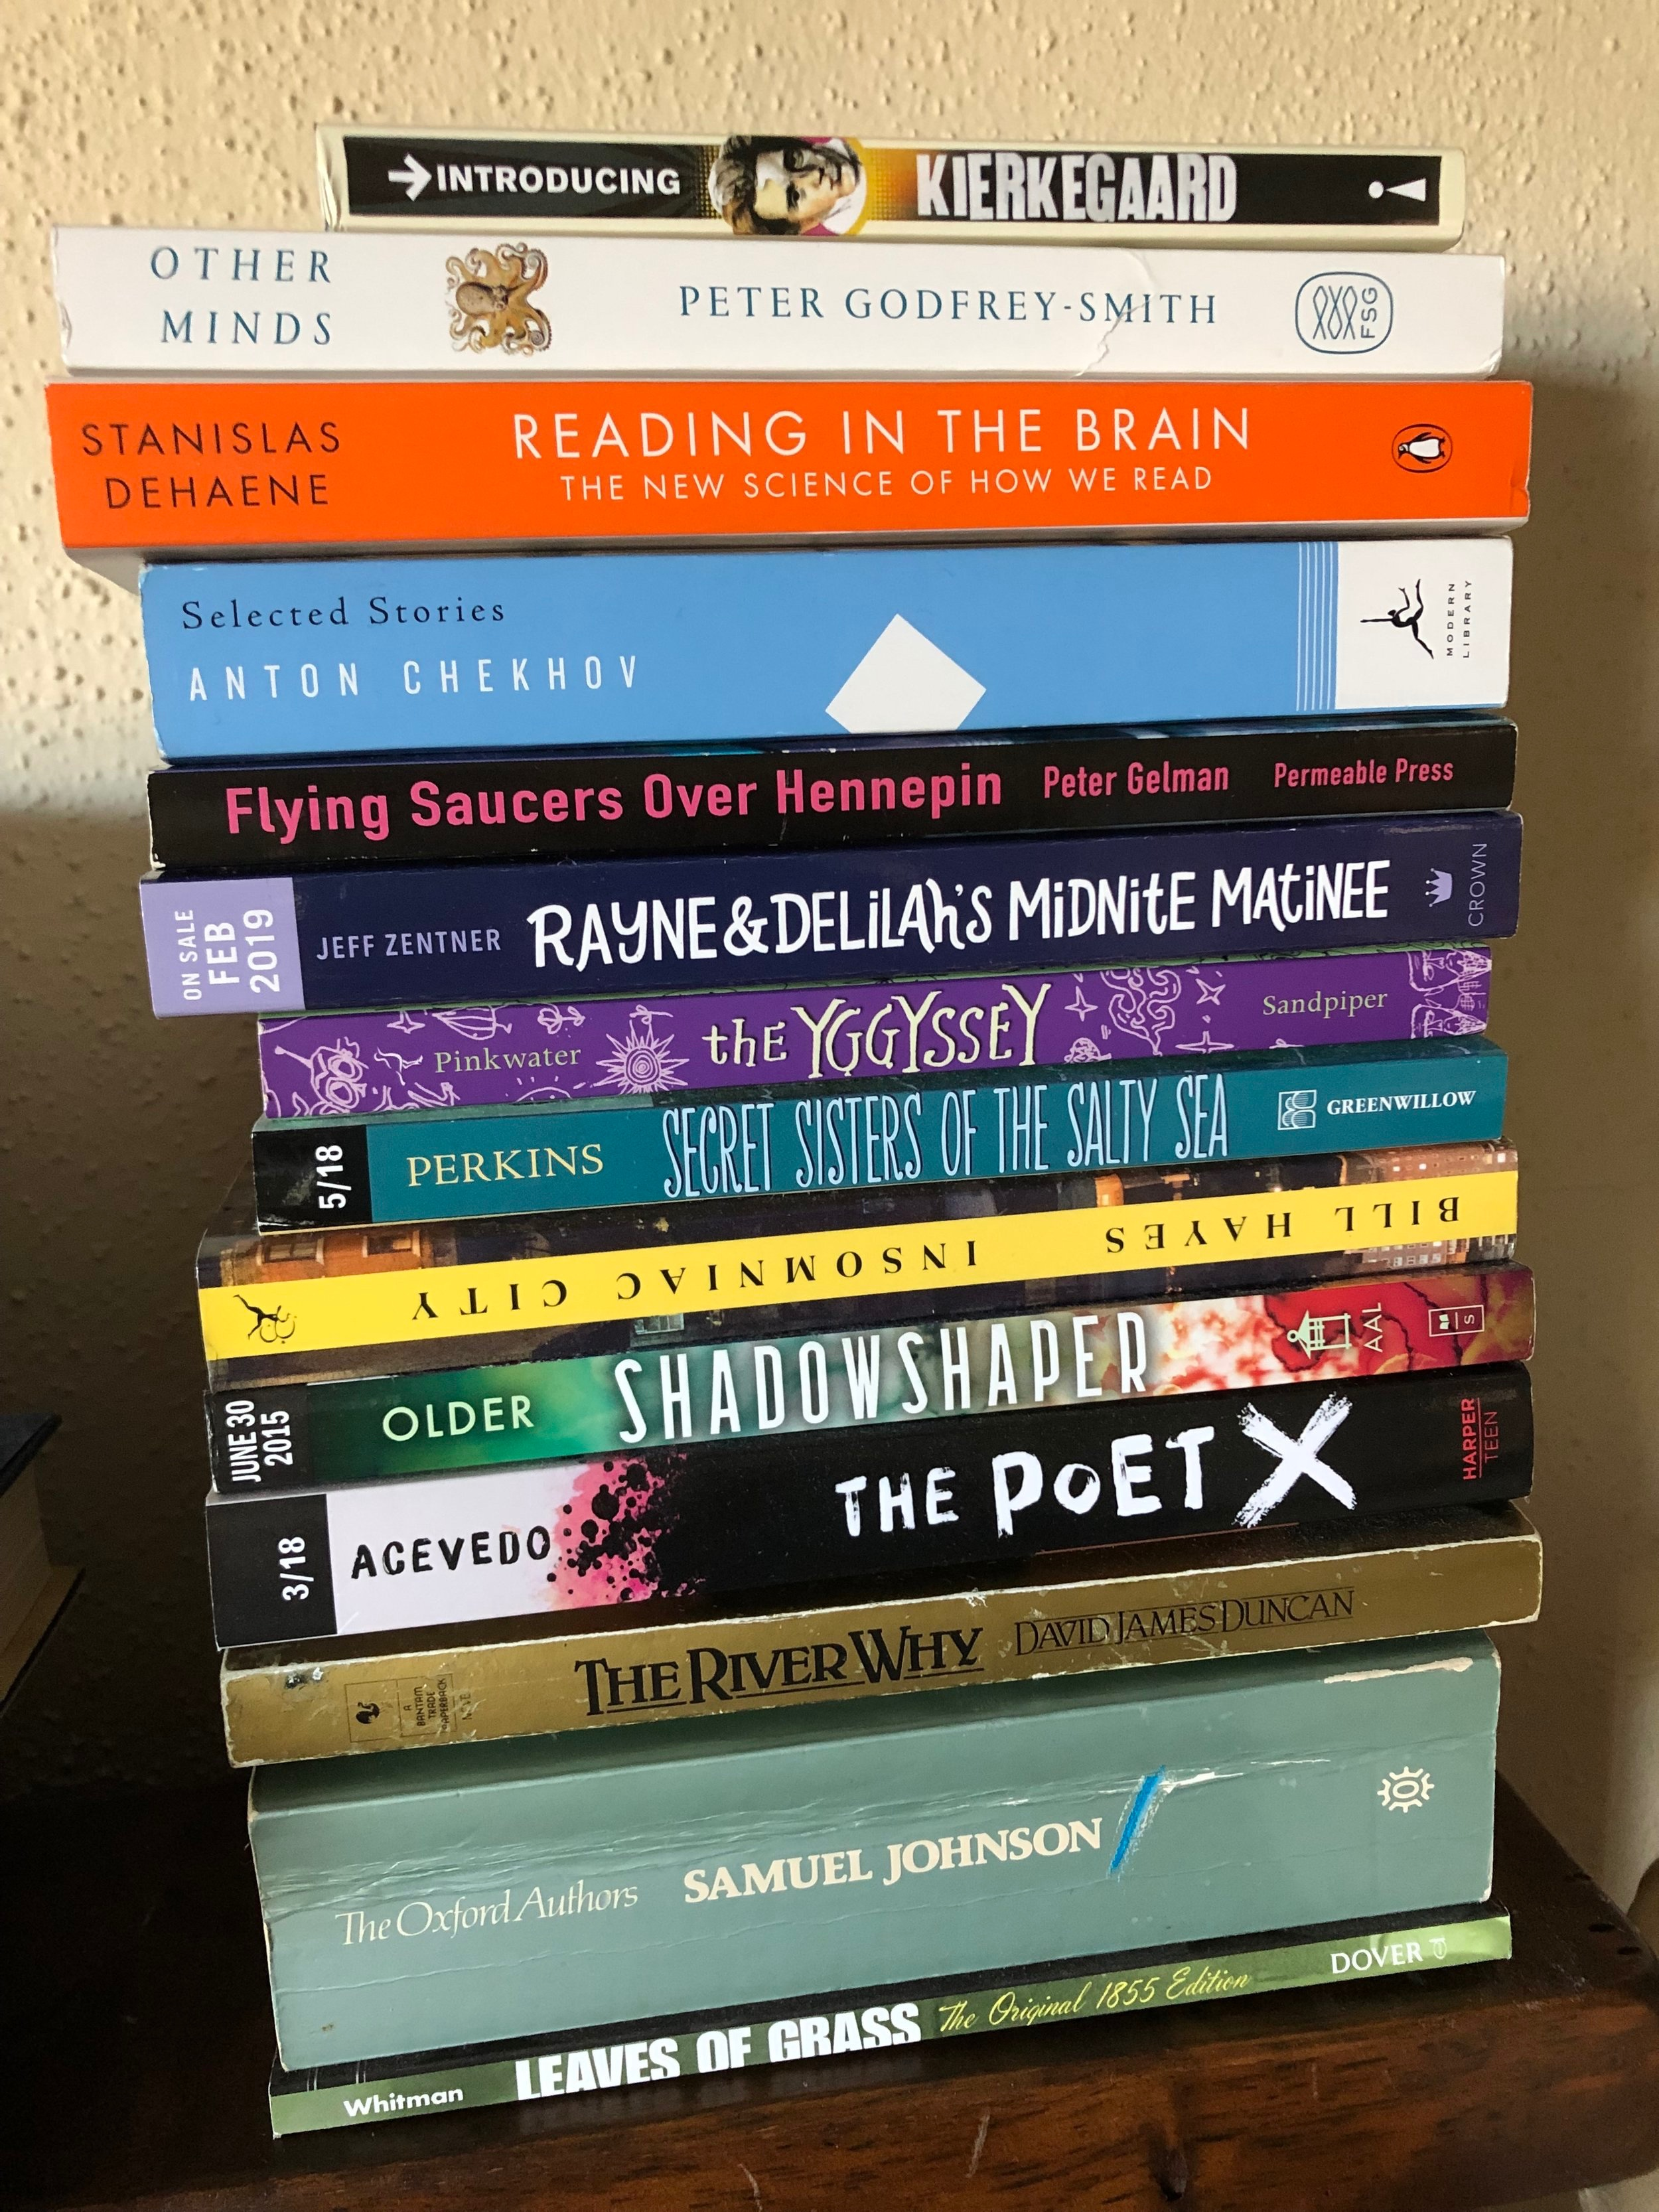 These are the books that will injure me when the Earth trembles.